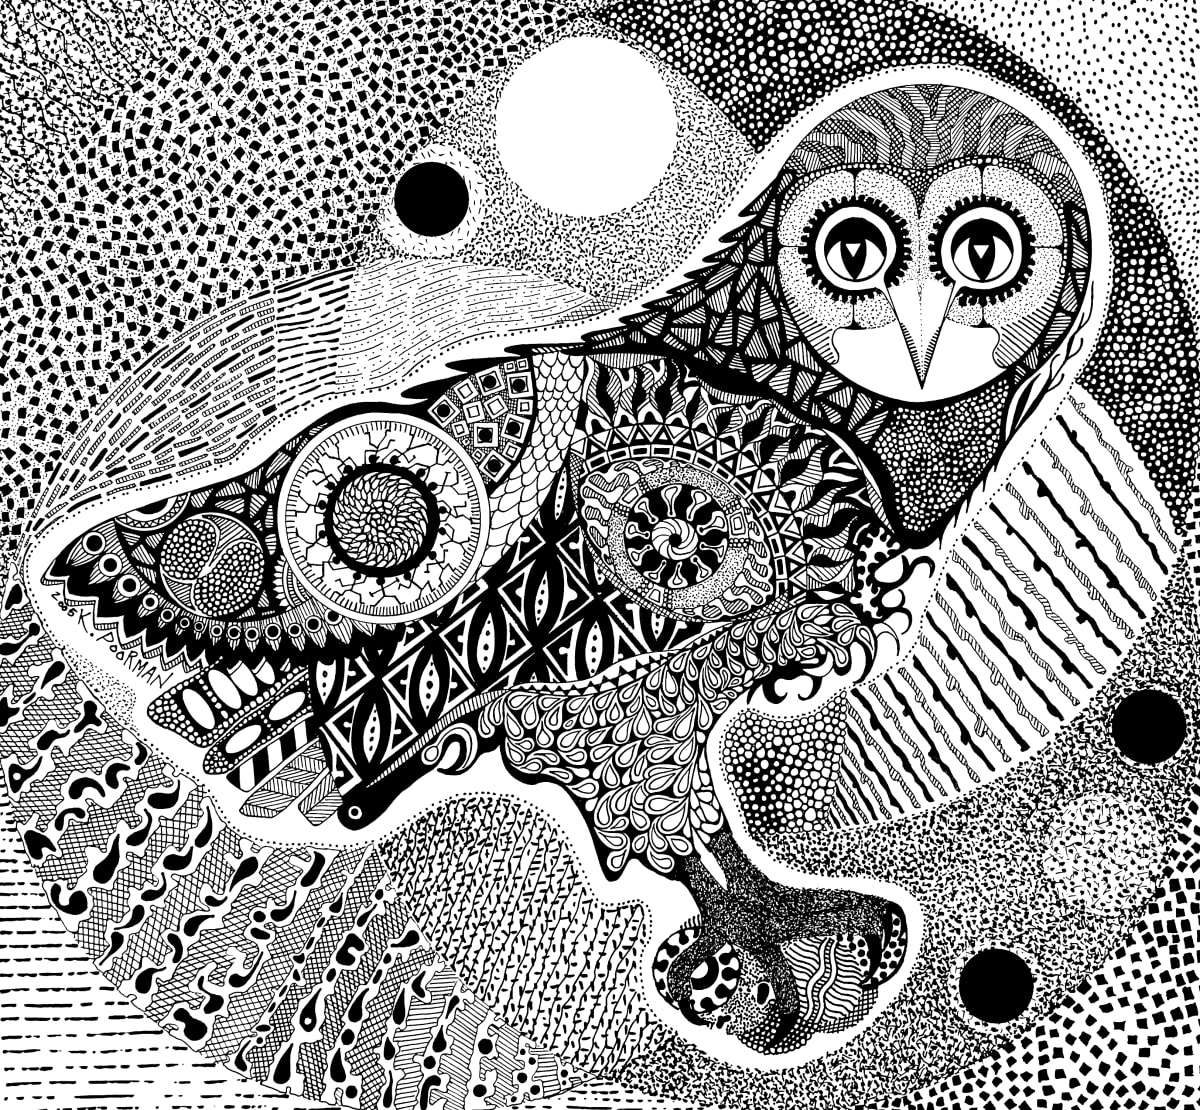 Night Owl by Kevin Poorman